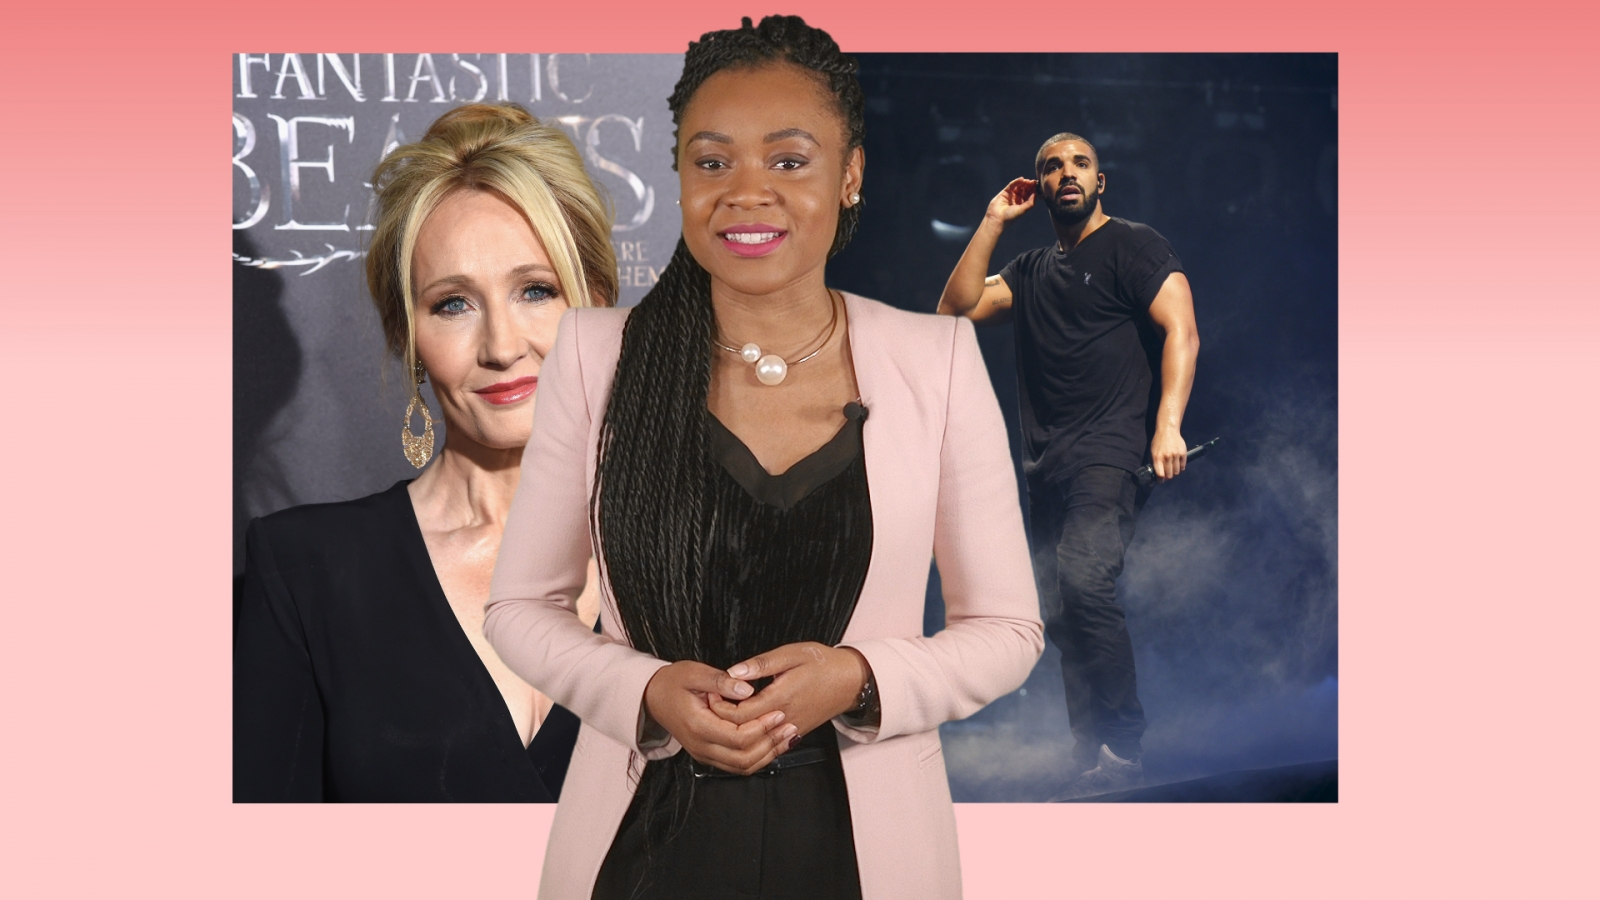 A-list insider: JK Rowling vs. Piers Morgan, Drake is have-a-go hero and Alanis Morissette robbed